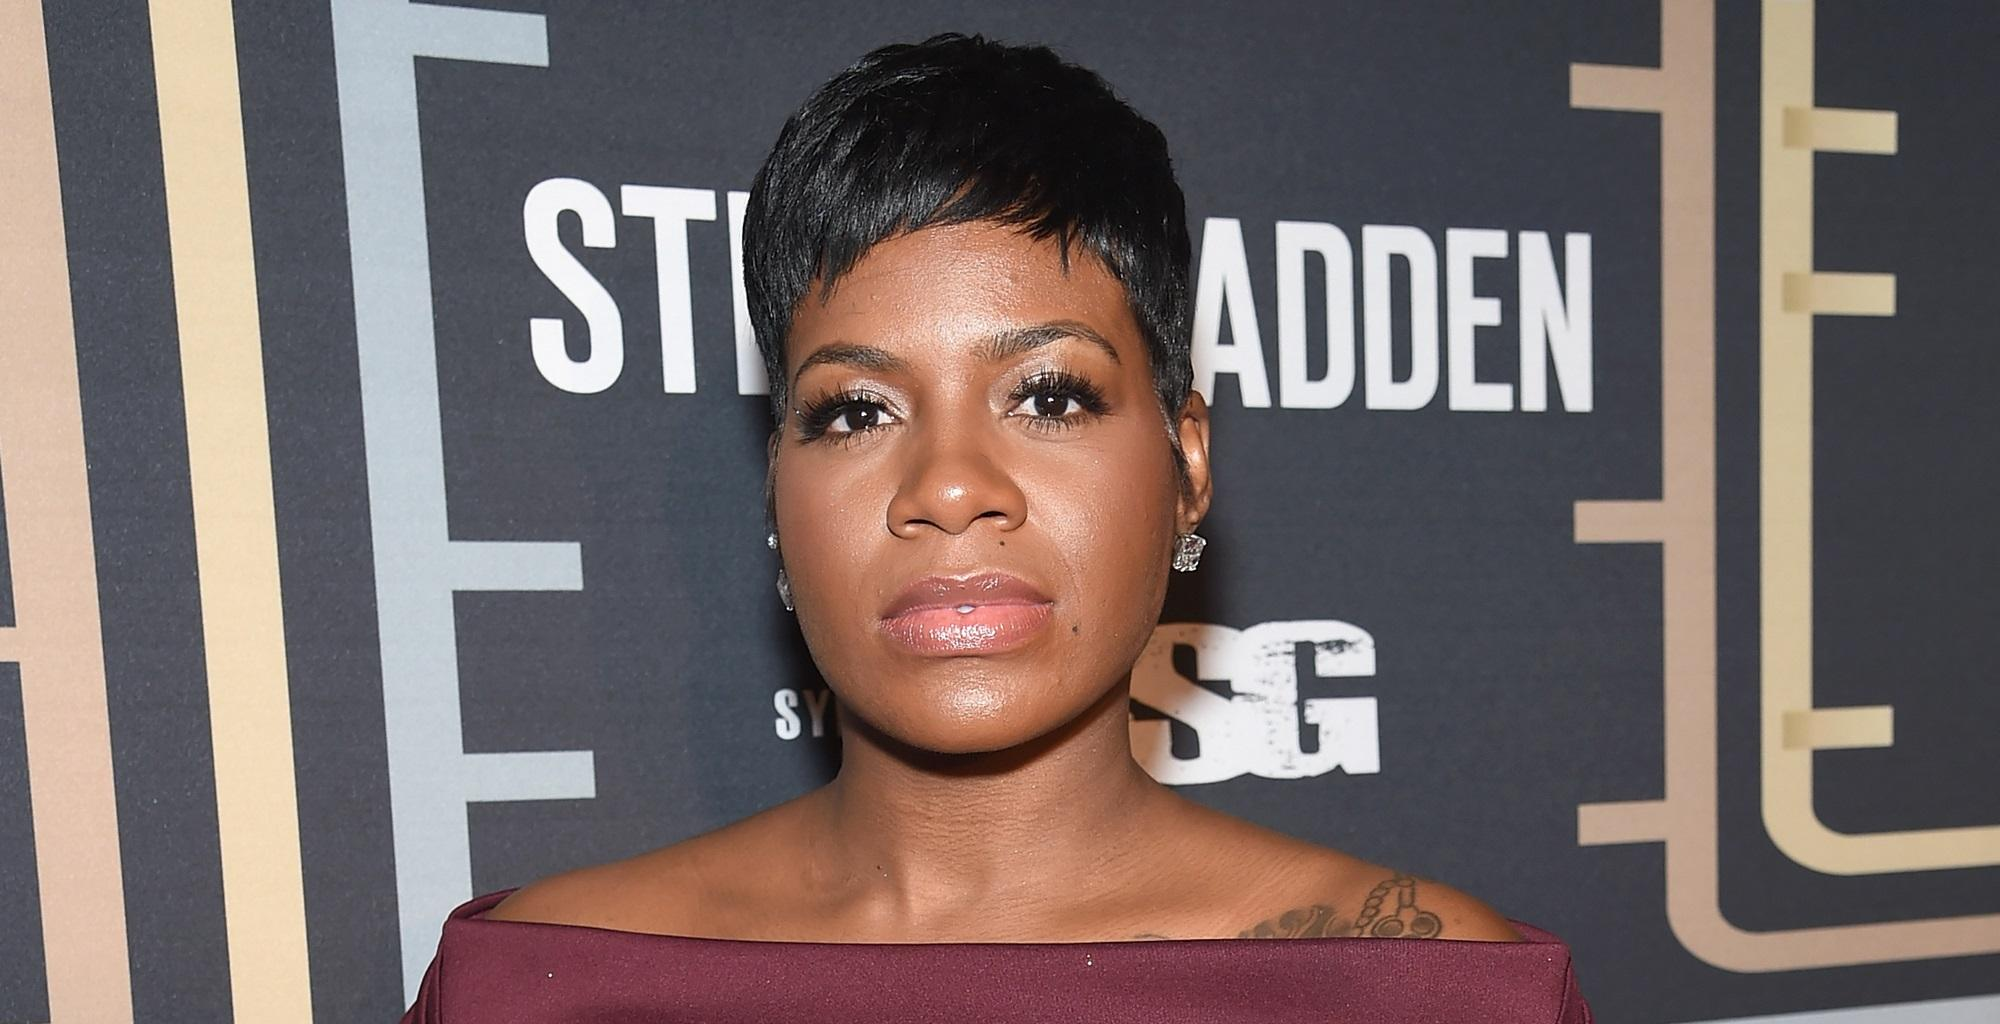 Fantasia Barrino-Taylor Surprises Fans With A Rare Photo Of Her Gorgeous 18-Year-Old Daughter, Zion